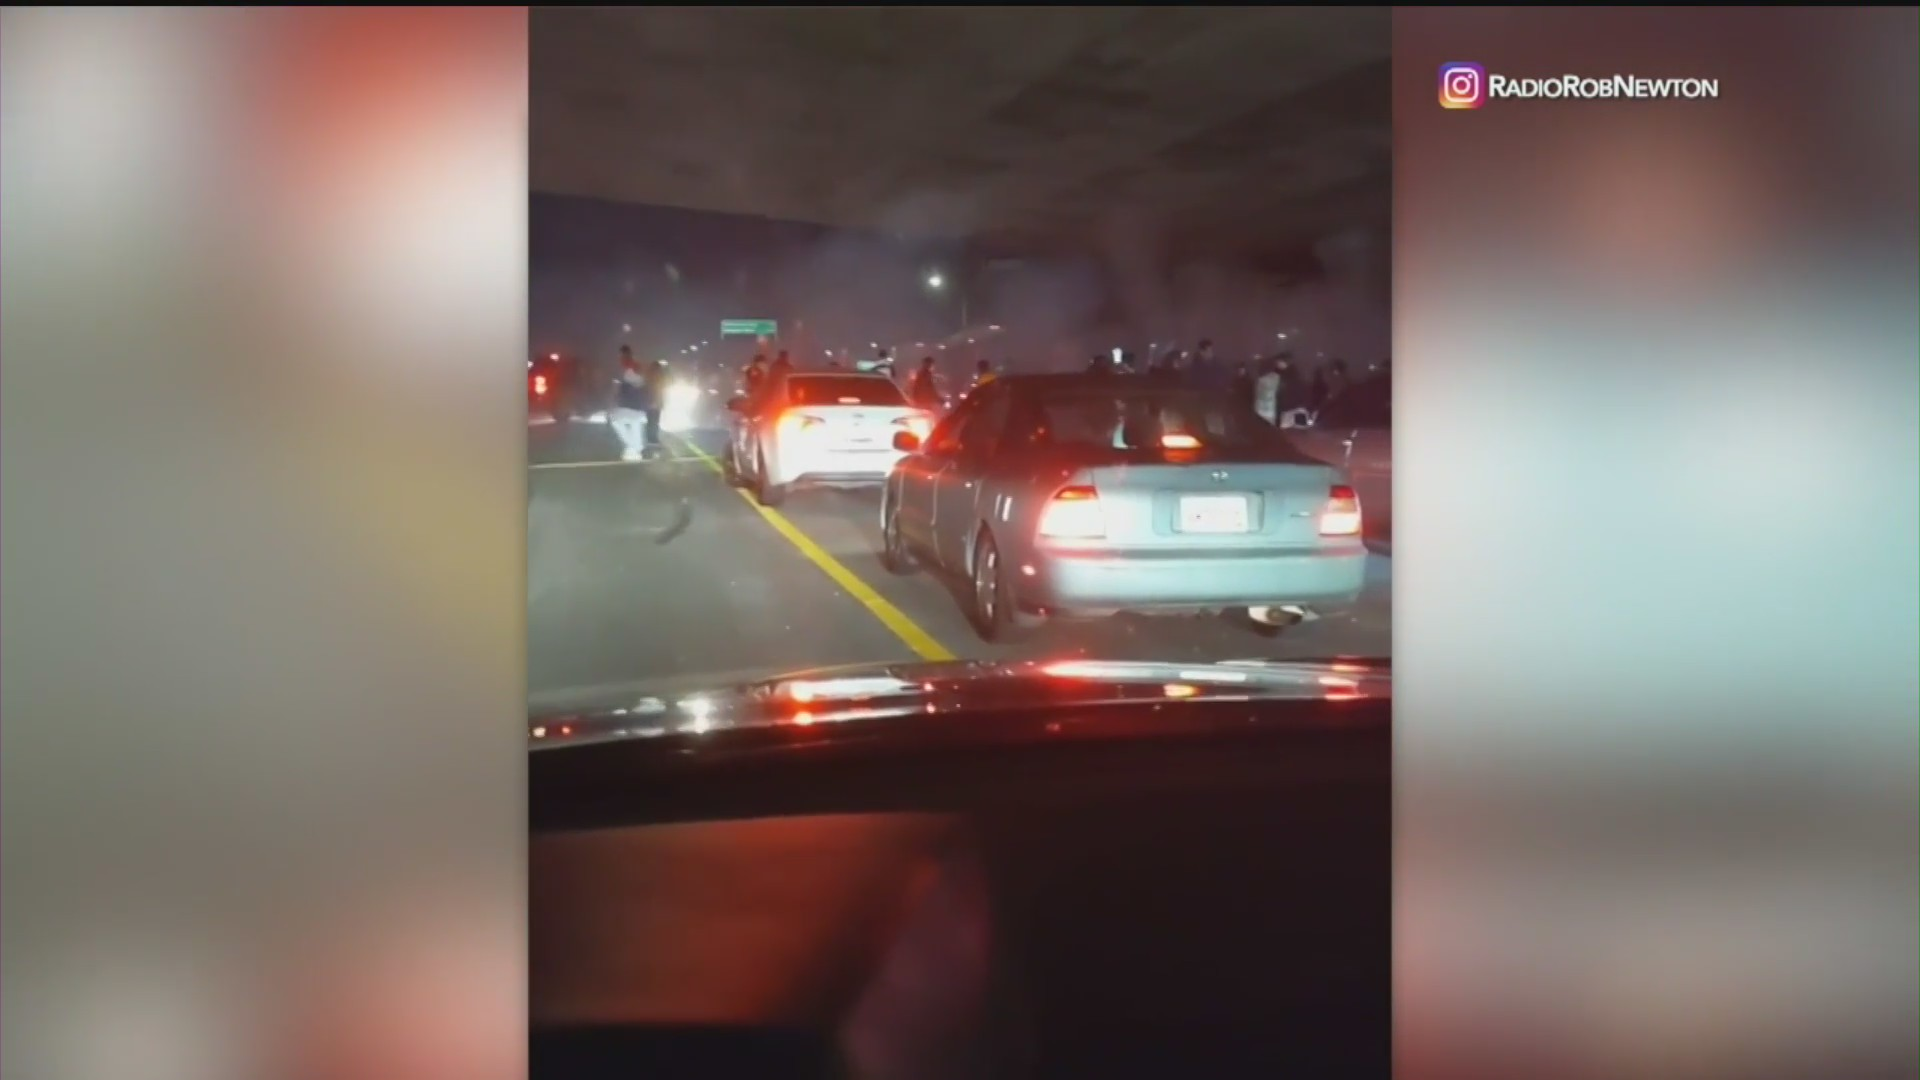 A group of about 50 people stopped traffic on the 5 Freeway in Commerce to perform car stunts on May 21, 2020. (@RadioRobNewton on Instagram)